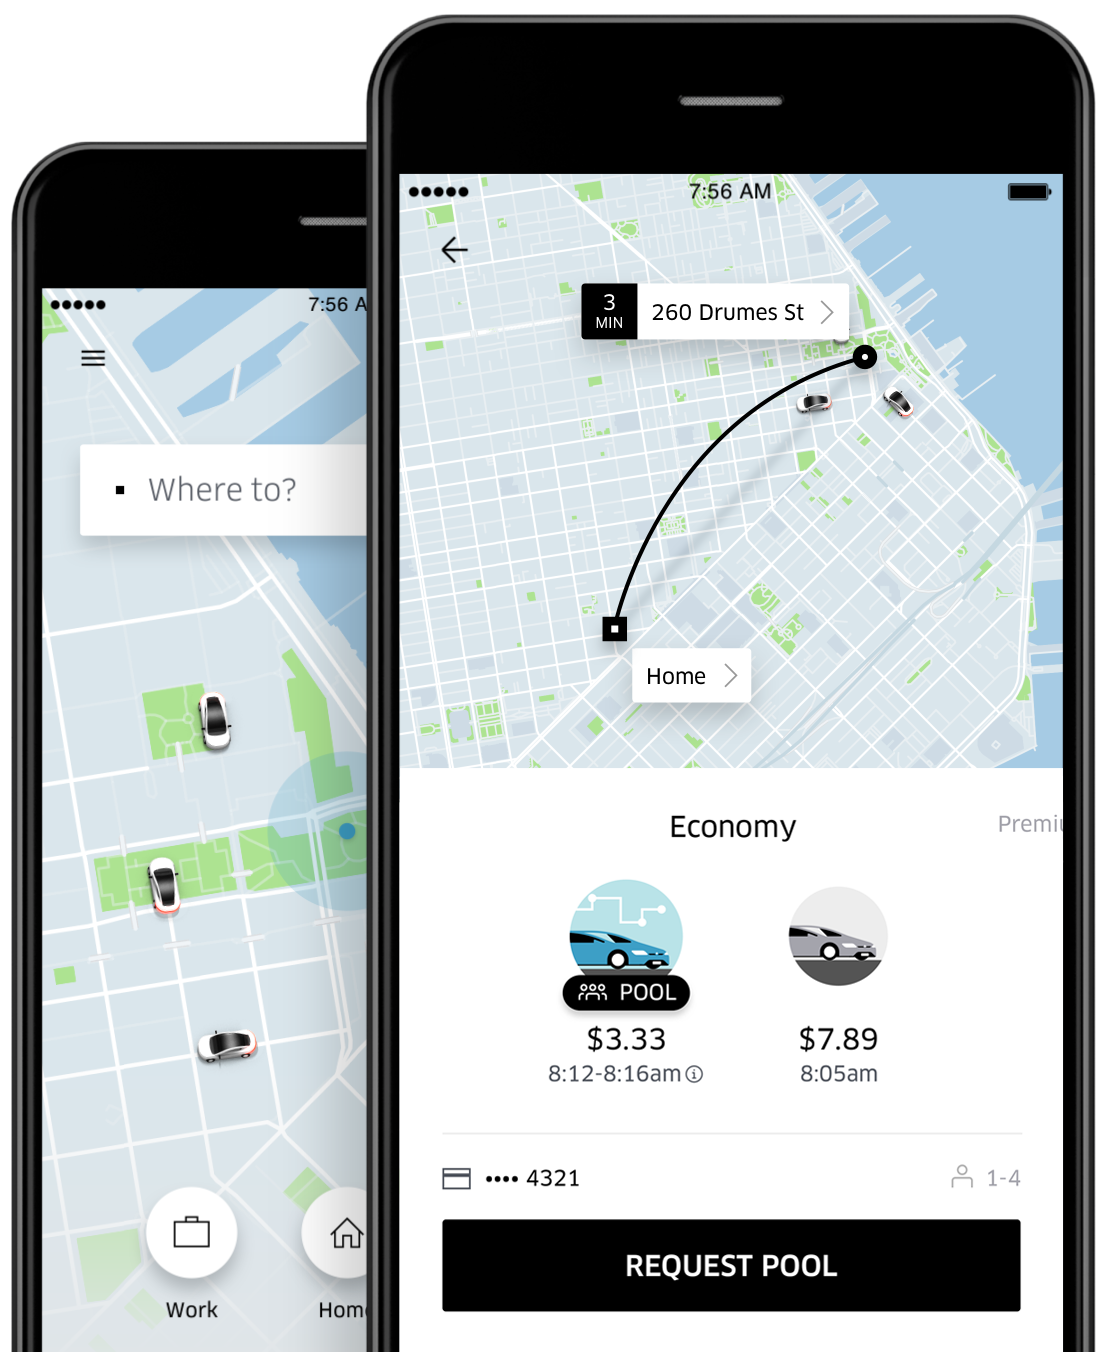 Building An Uberlike Taxi Application